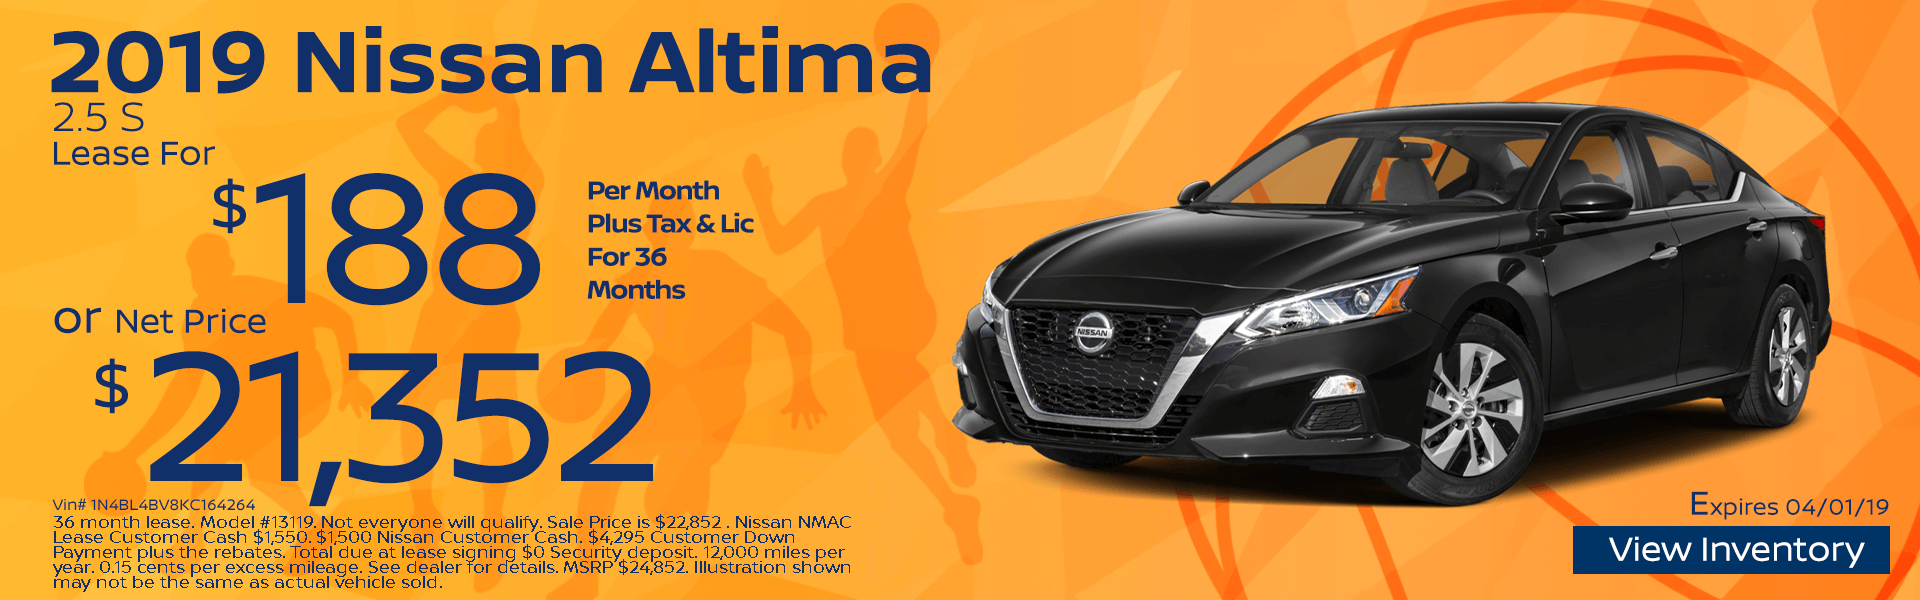 Altima Lease and Net Price